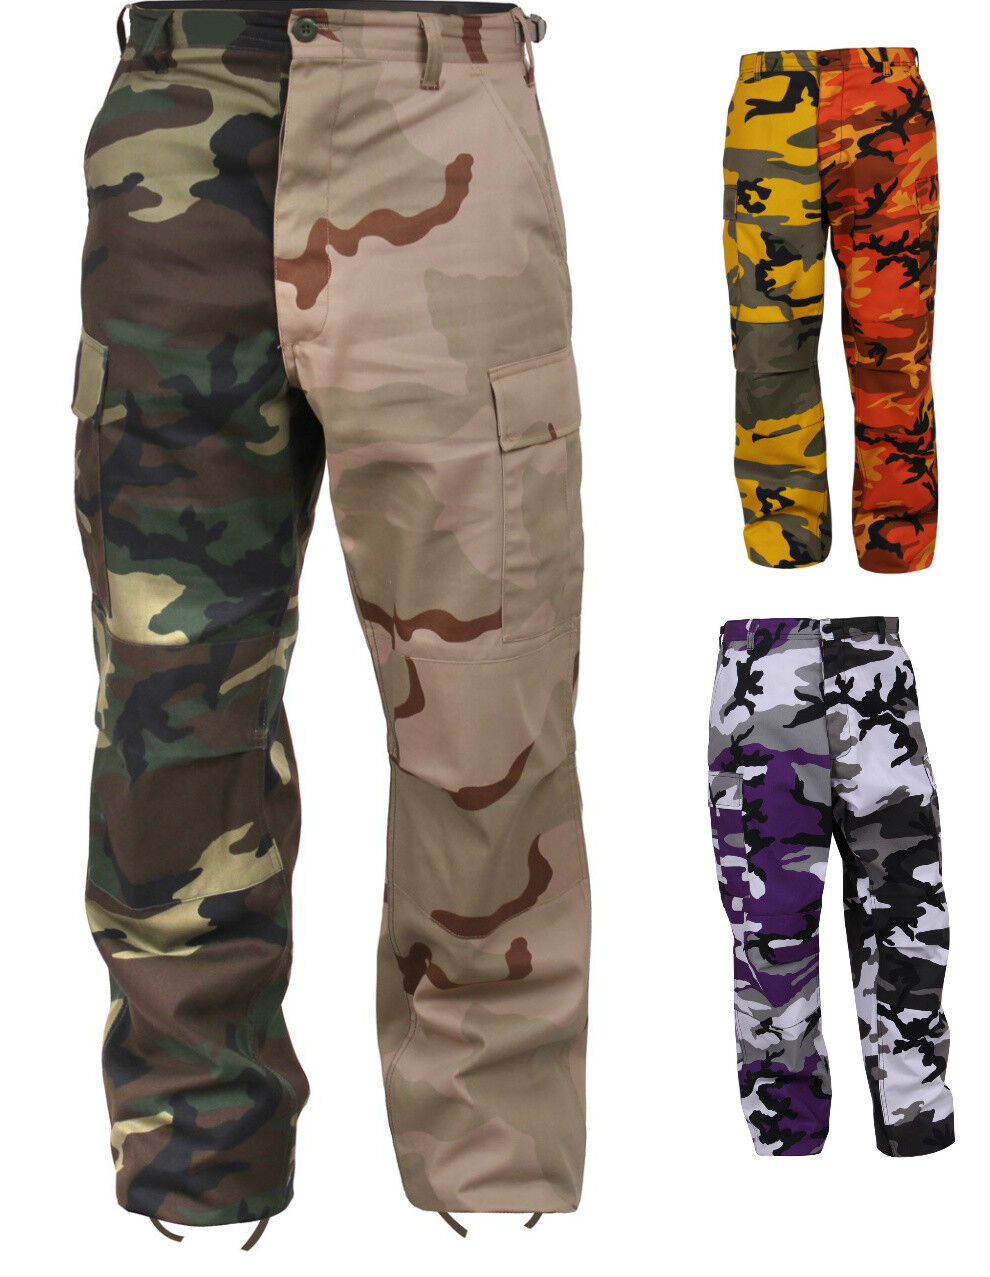 BDU Pants Two-Tone Camo Military Camouflage redhco 1830 1840